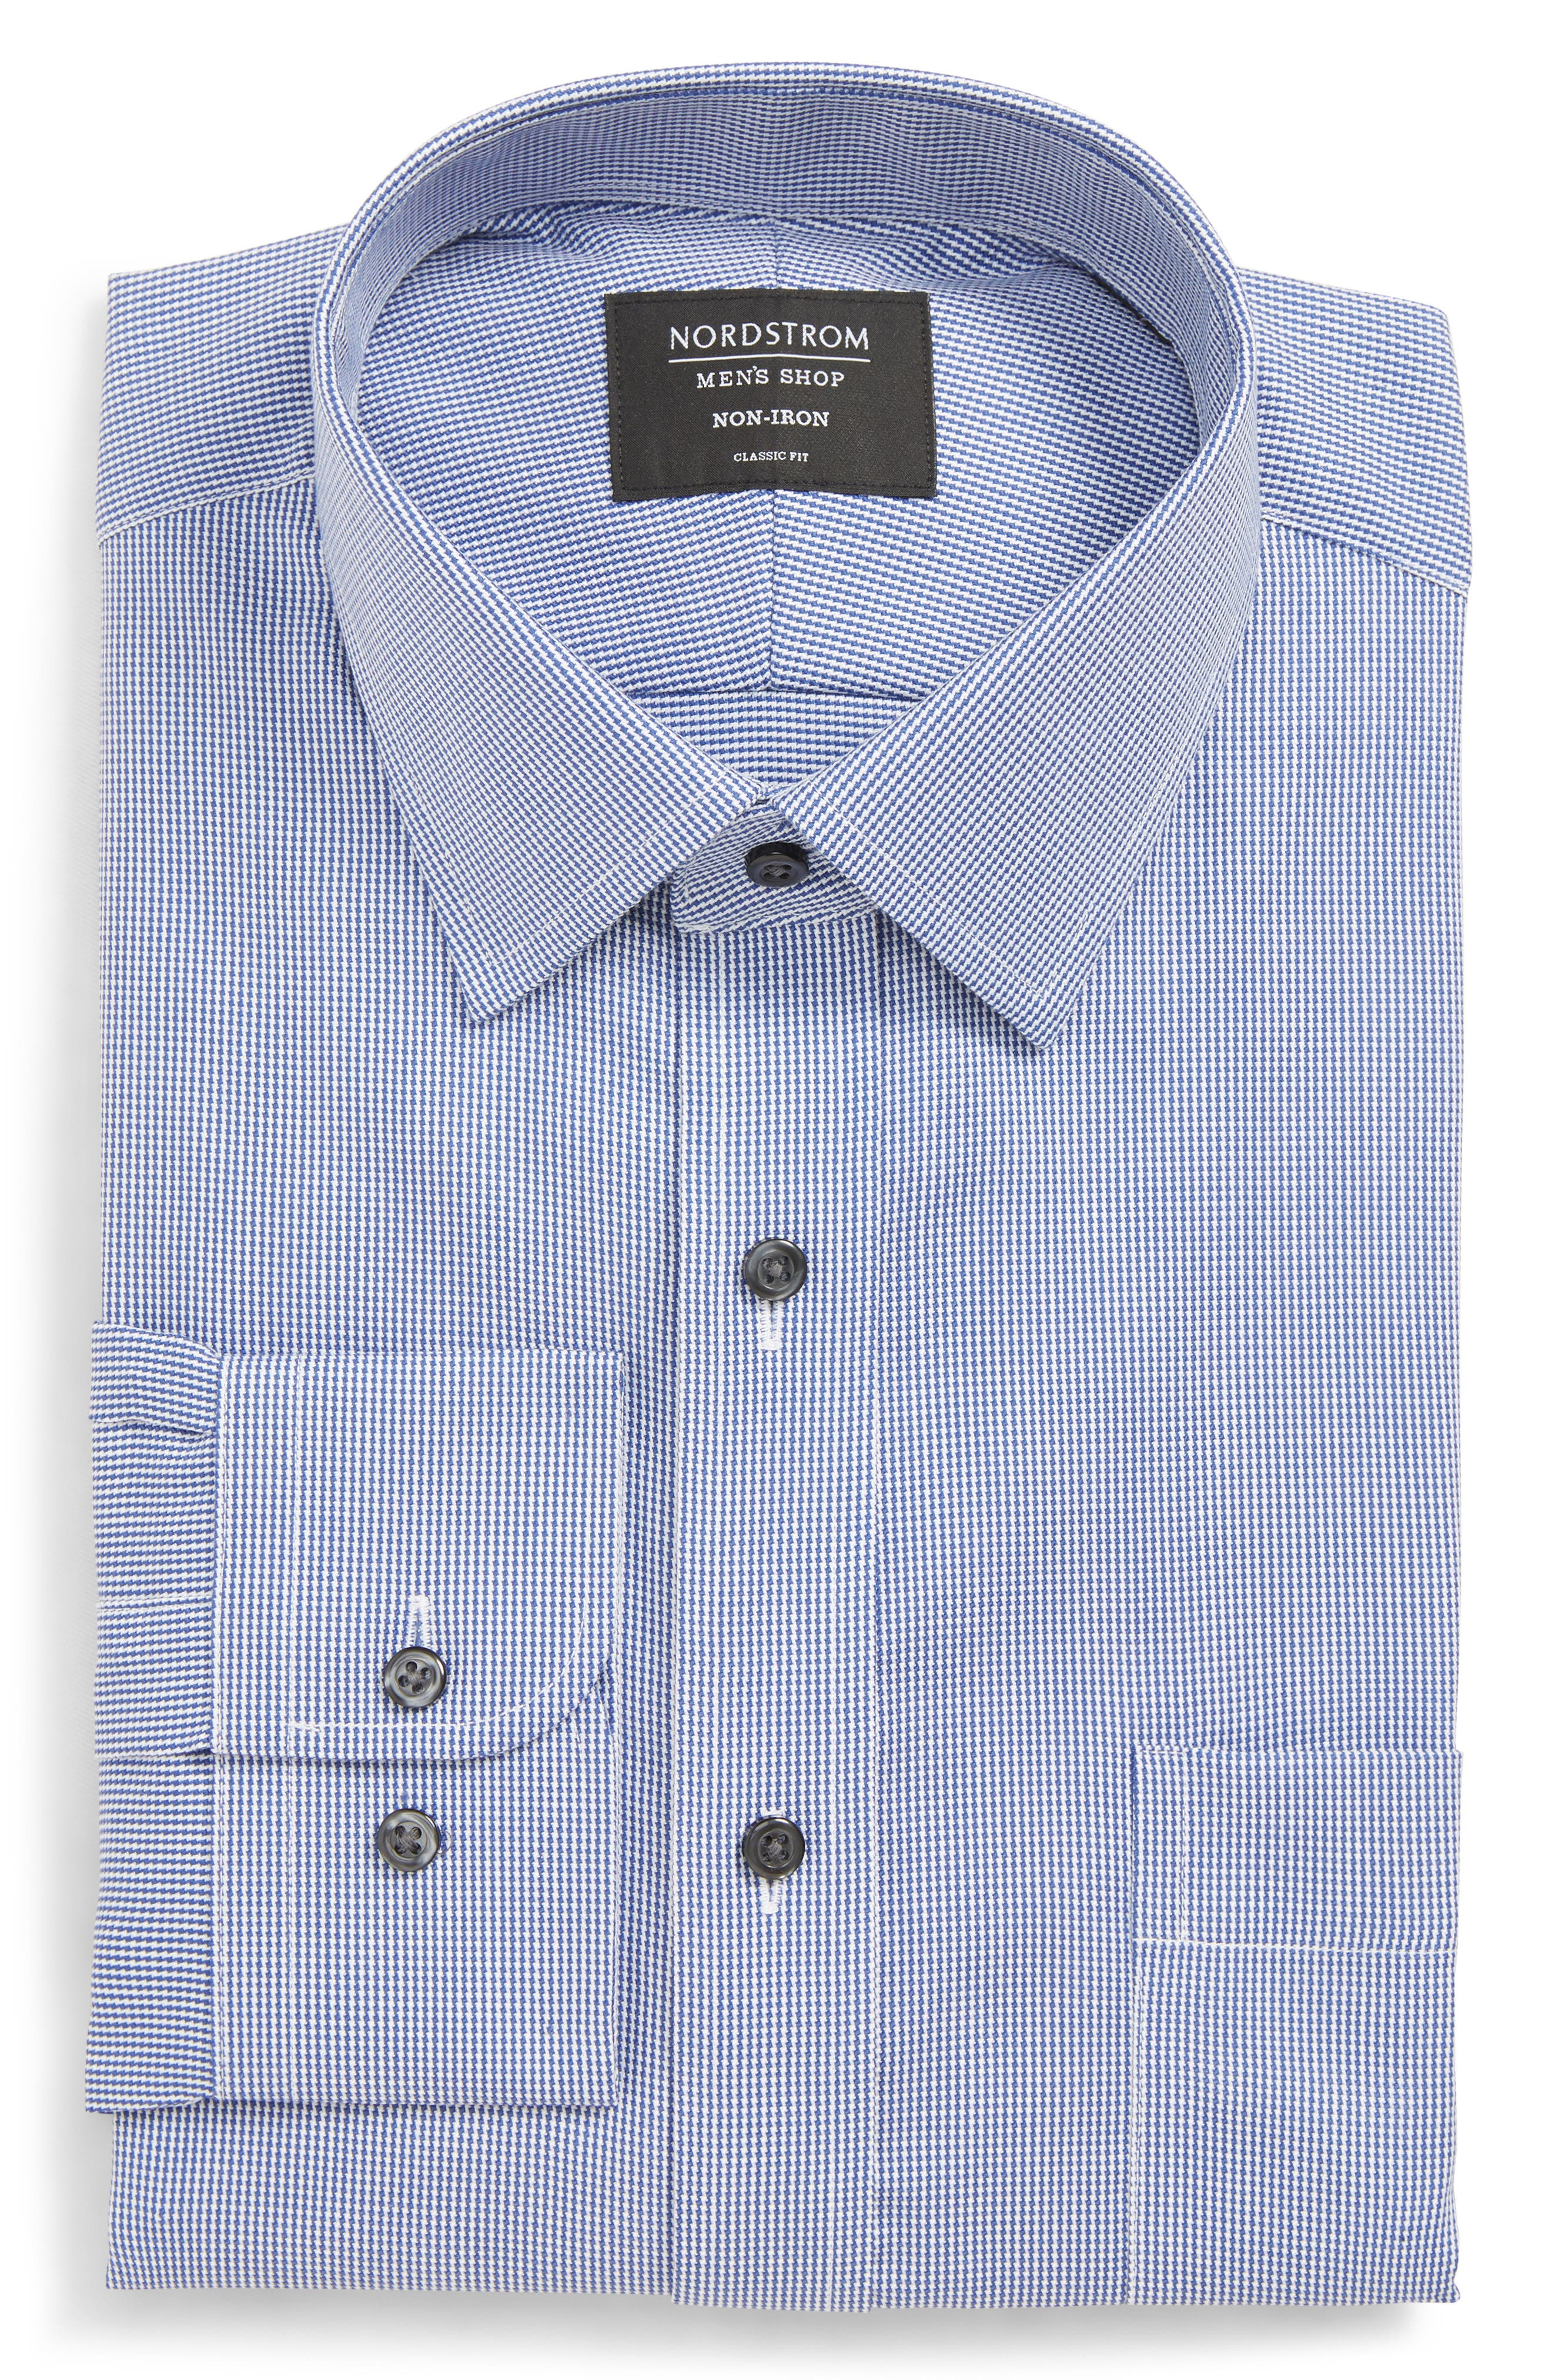 NORDSTROM MEN'S SHOP, Classic Fit Non-Iron Stripe Dress Shirt, Main thumbnail 1, color, NAVY DRESS